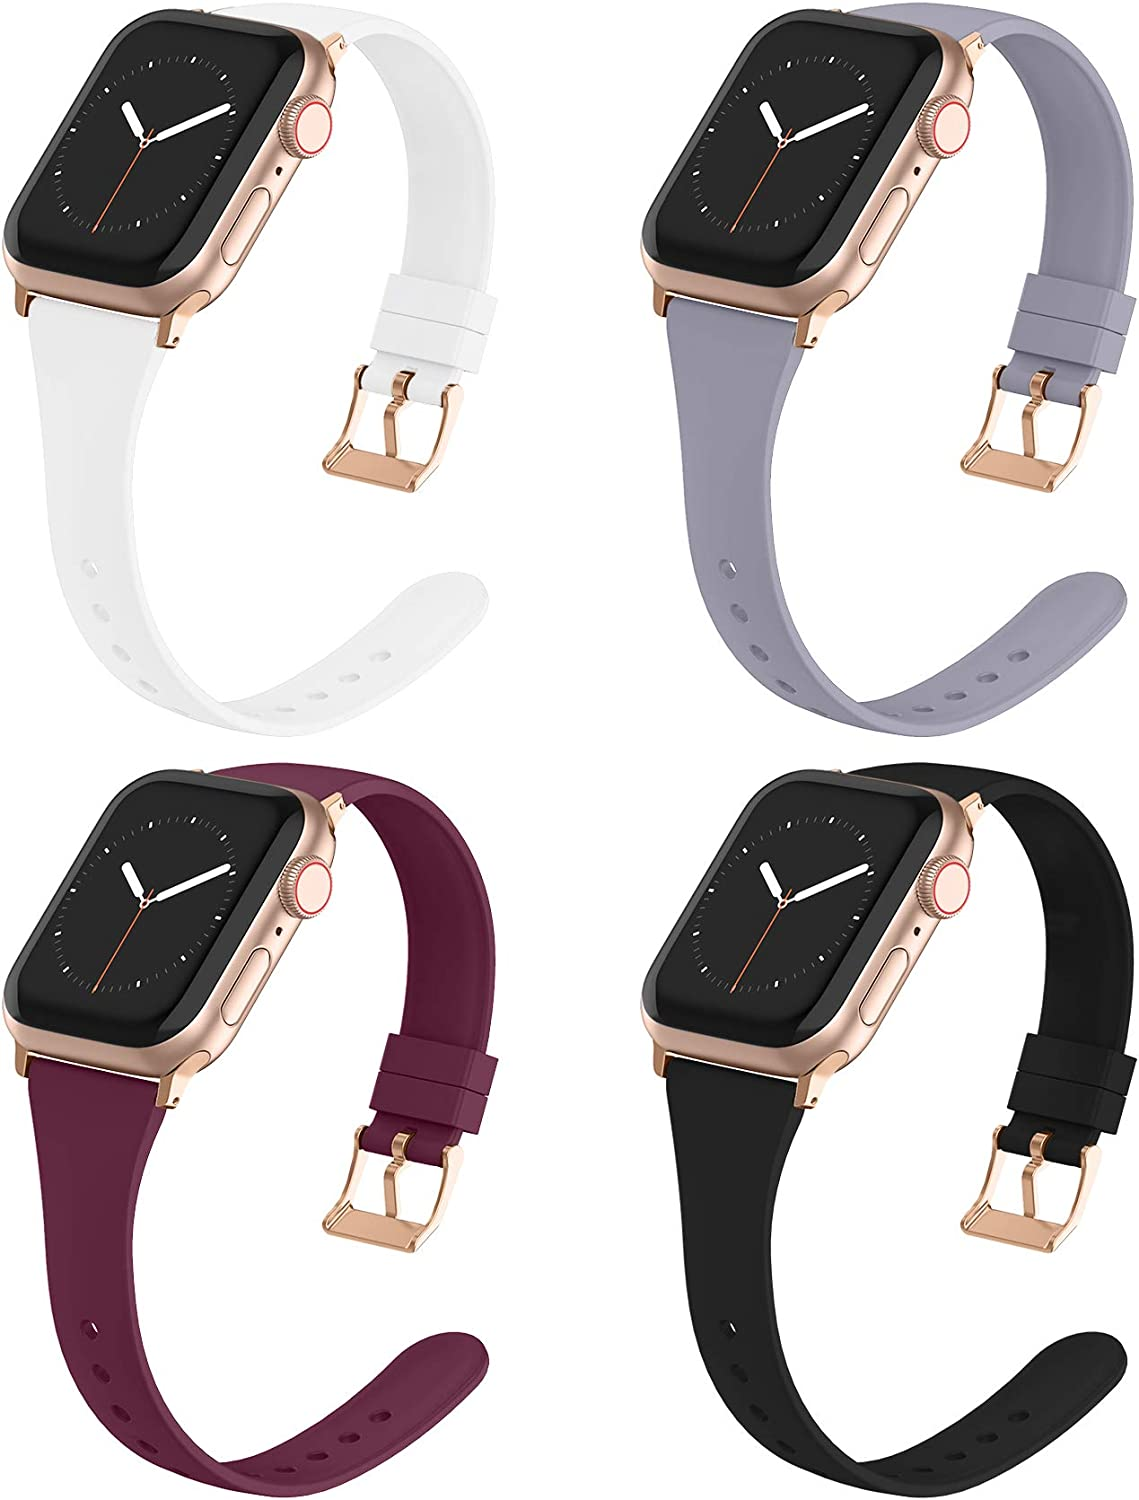 Compatible with Apple Watch Bands 38mm 40mm for Women Men, Adepoy Soft Silicone Narrow Slim Replacement Sport Wristbands for iWatch Series 6 5 4 3 2 1 SE, Small Black, Wine, Lavender, White